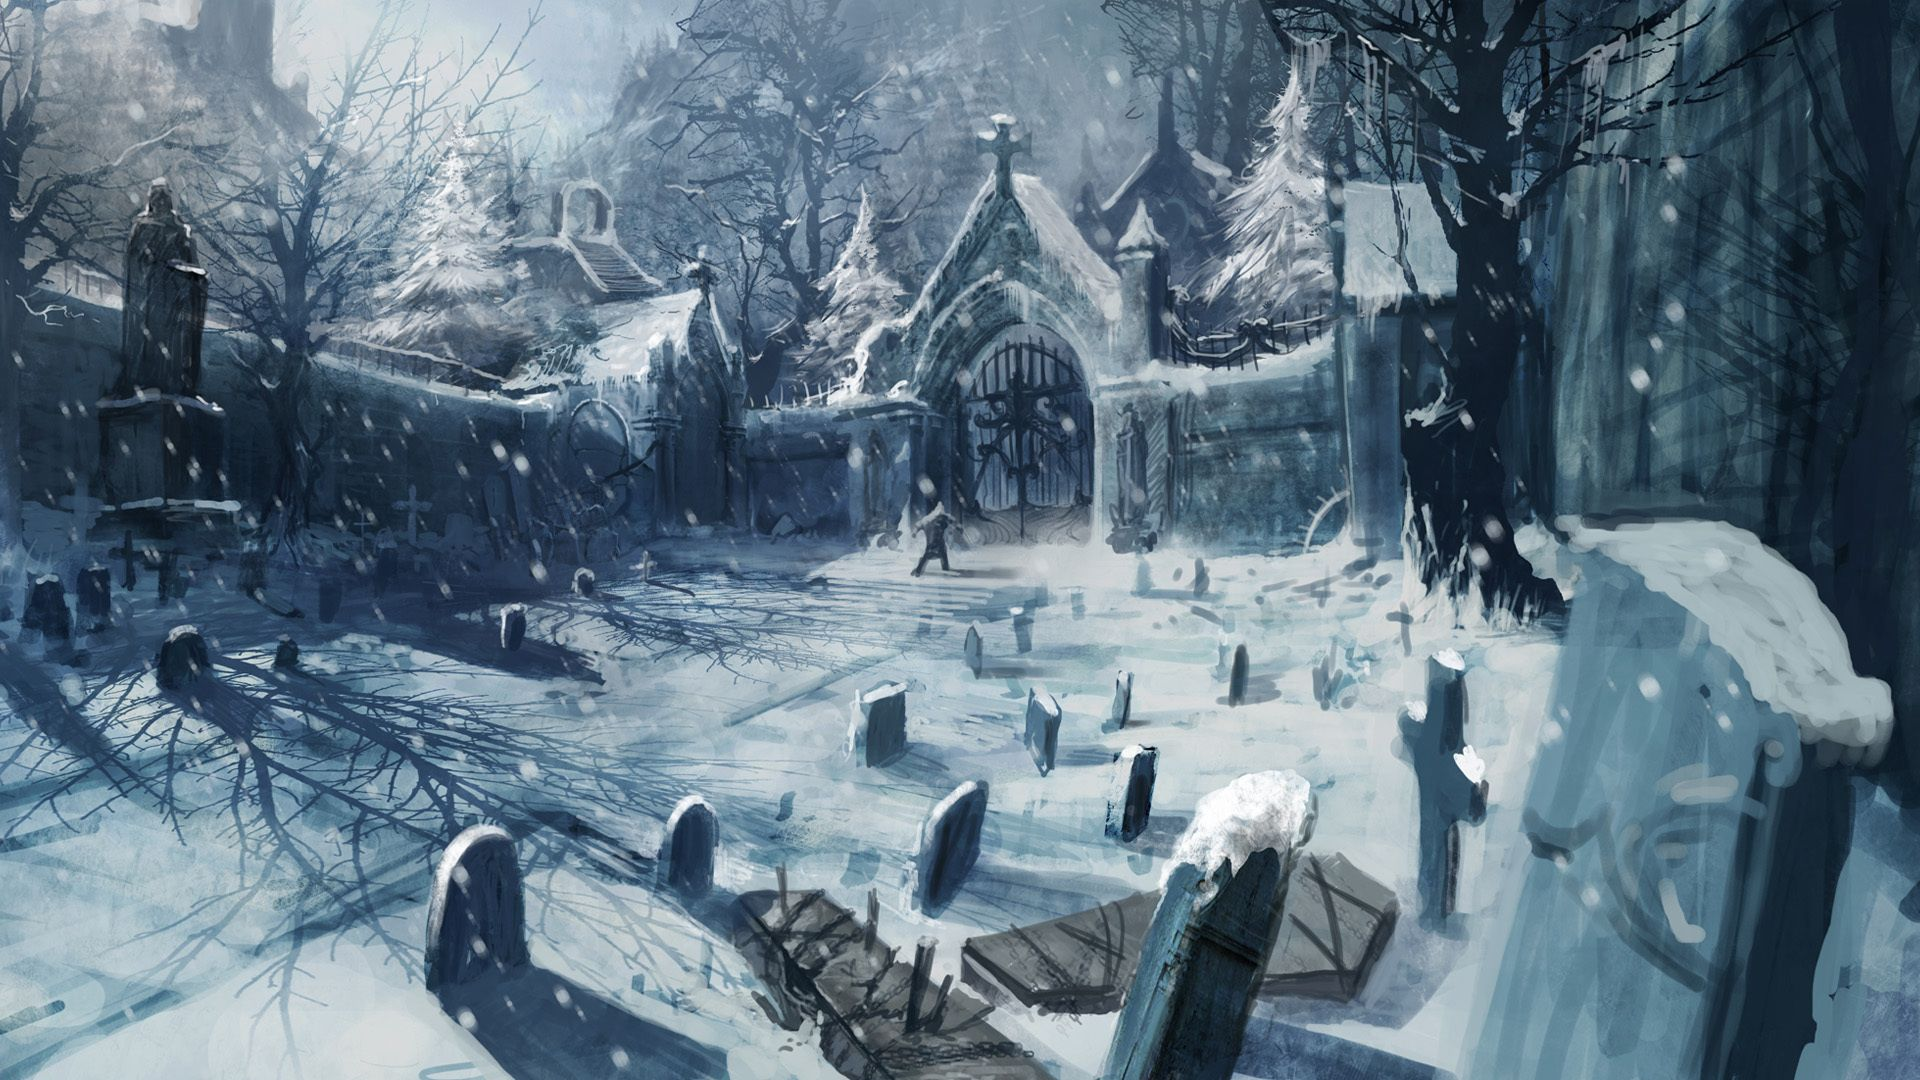 Castlevania Lords Of Shadow Wallpaper Fantasy Landscape Anime Scenery Winter Art